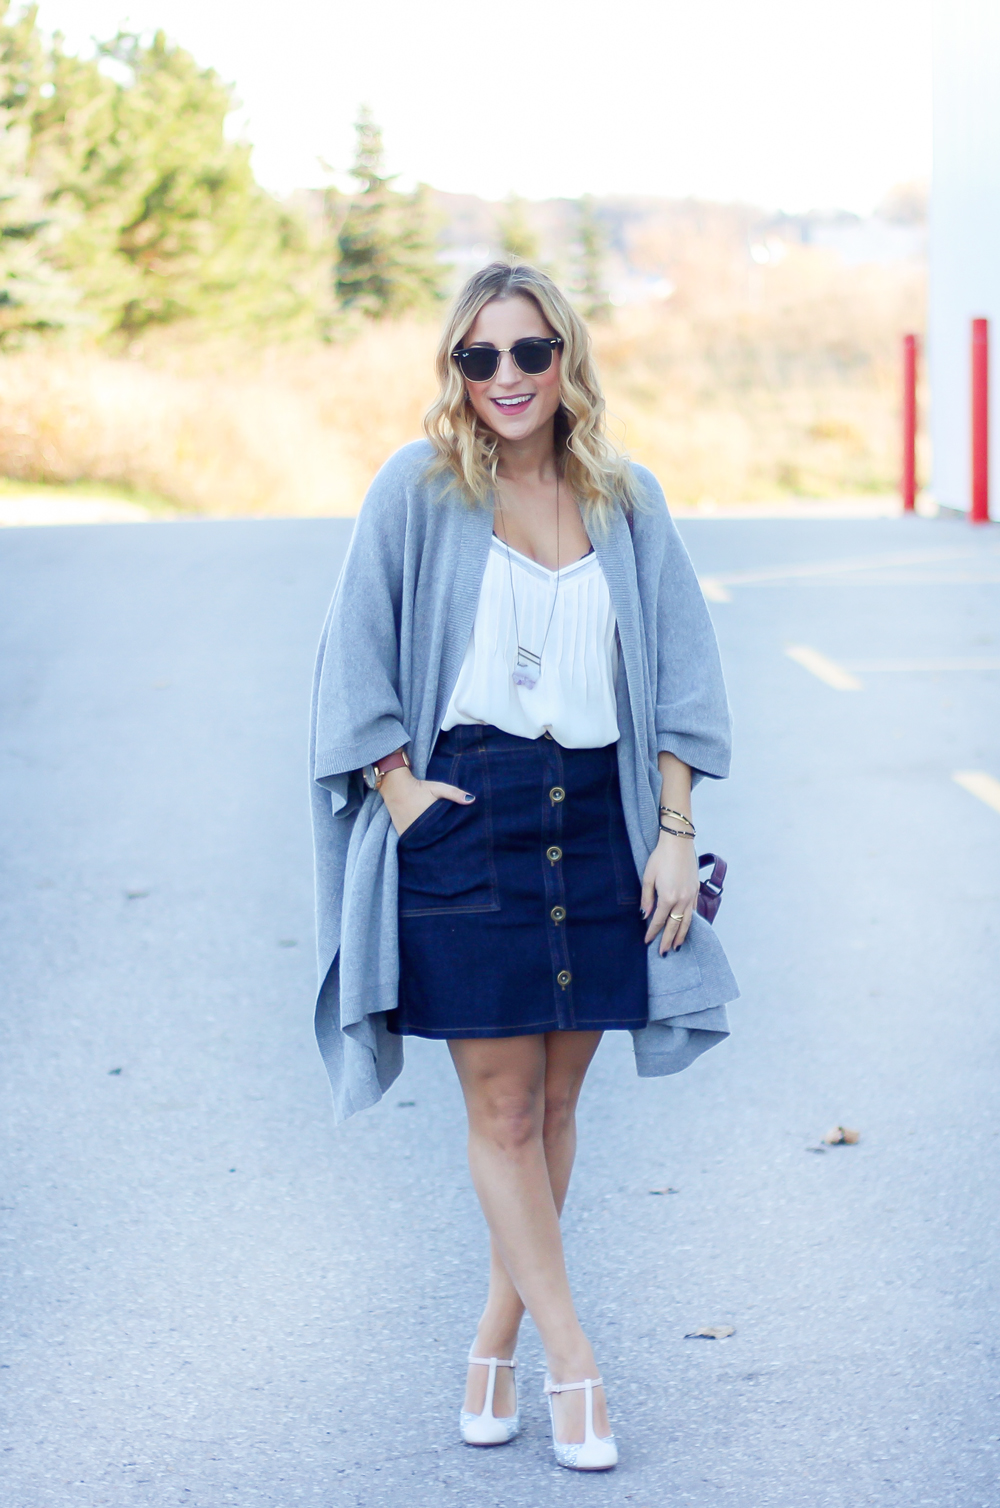 Toronto fashion and lifestyle blogger, Jackie Goldhar, from Something About That, shares an easy fall outfit, featuring pieces from Aritzia, Gap and Banana Republic